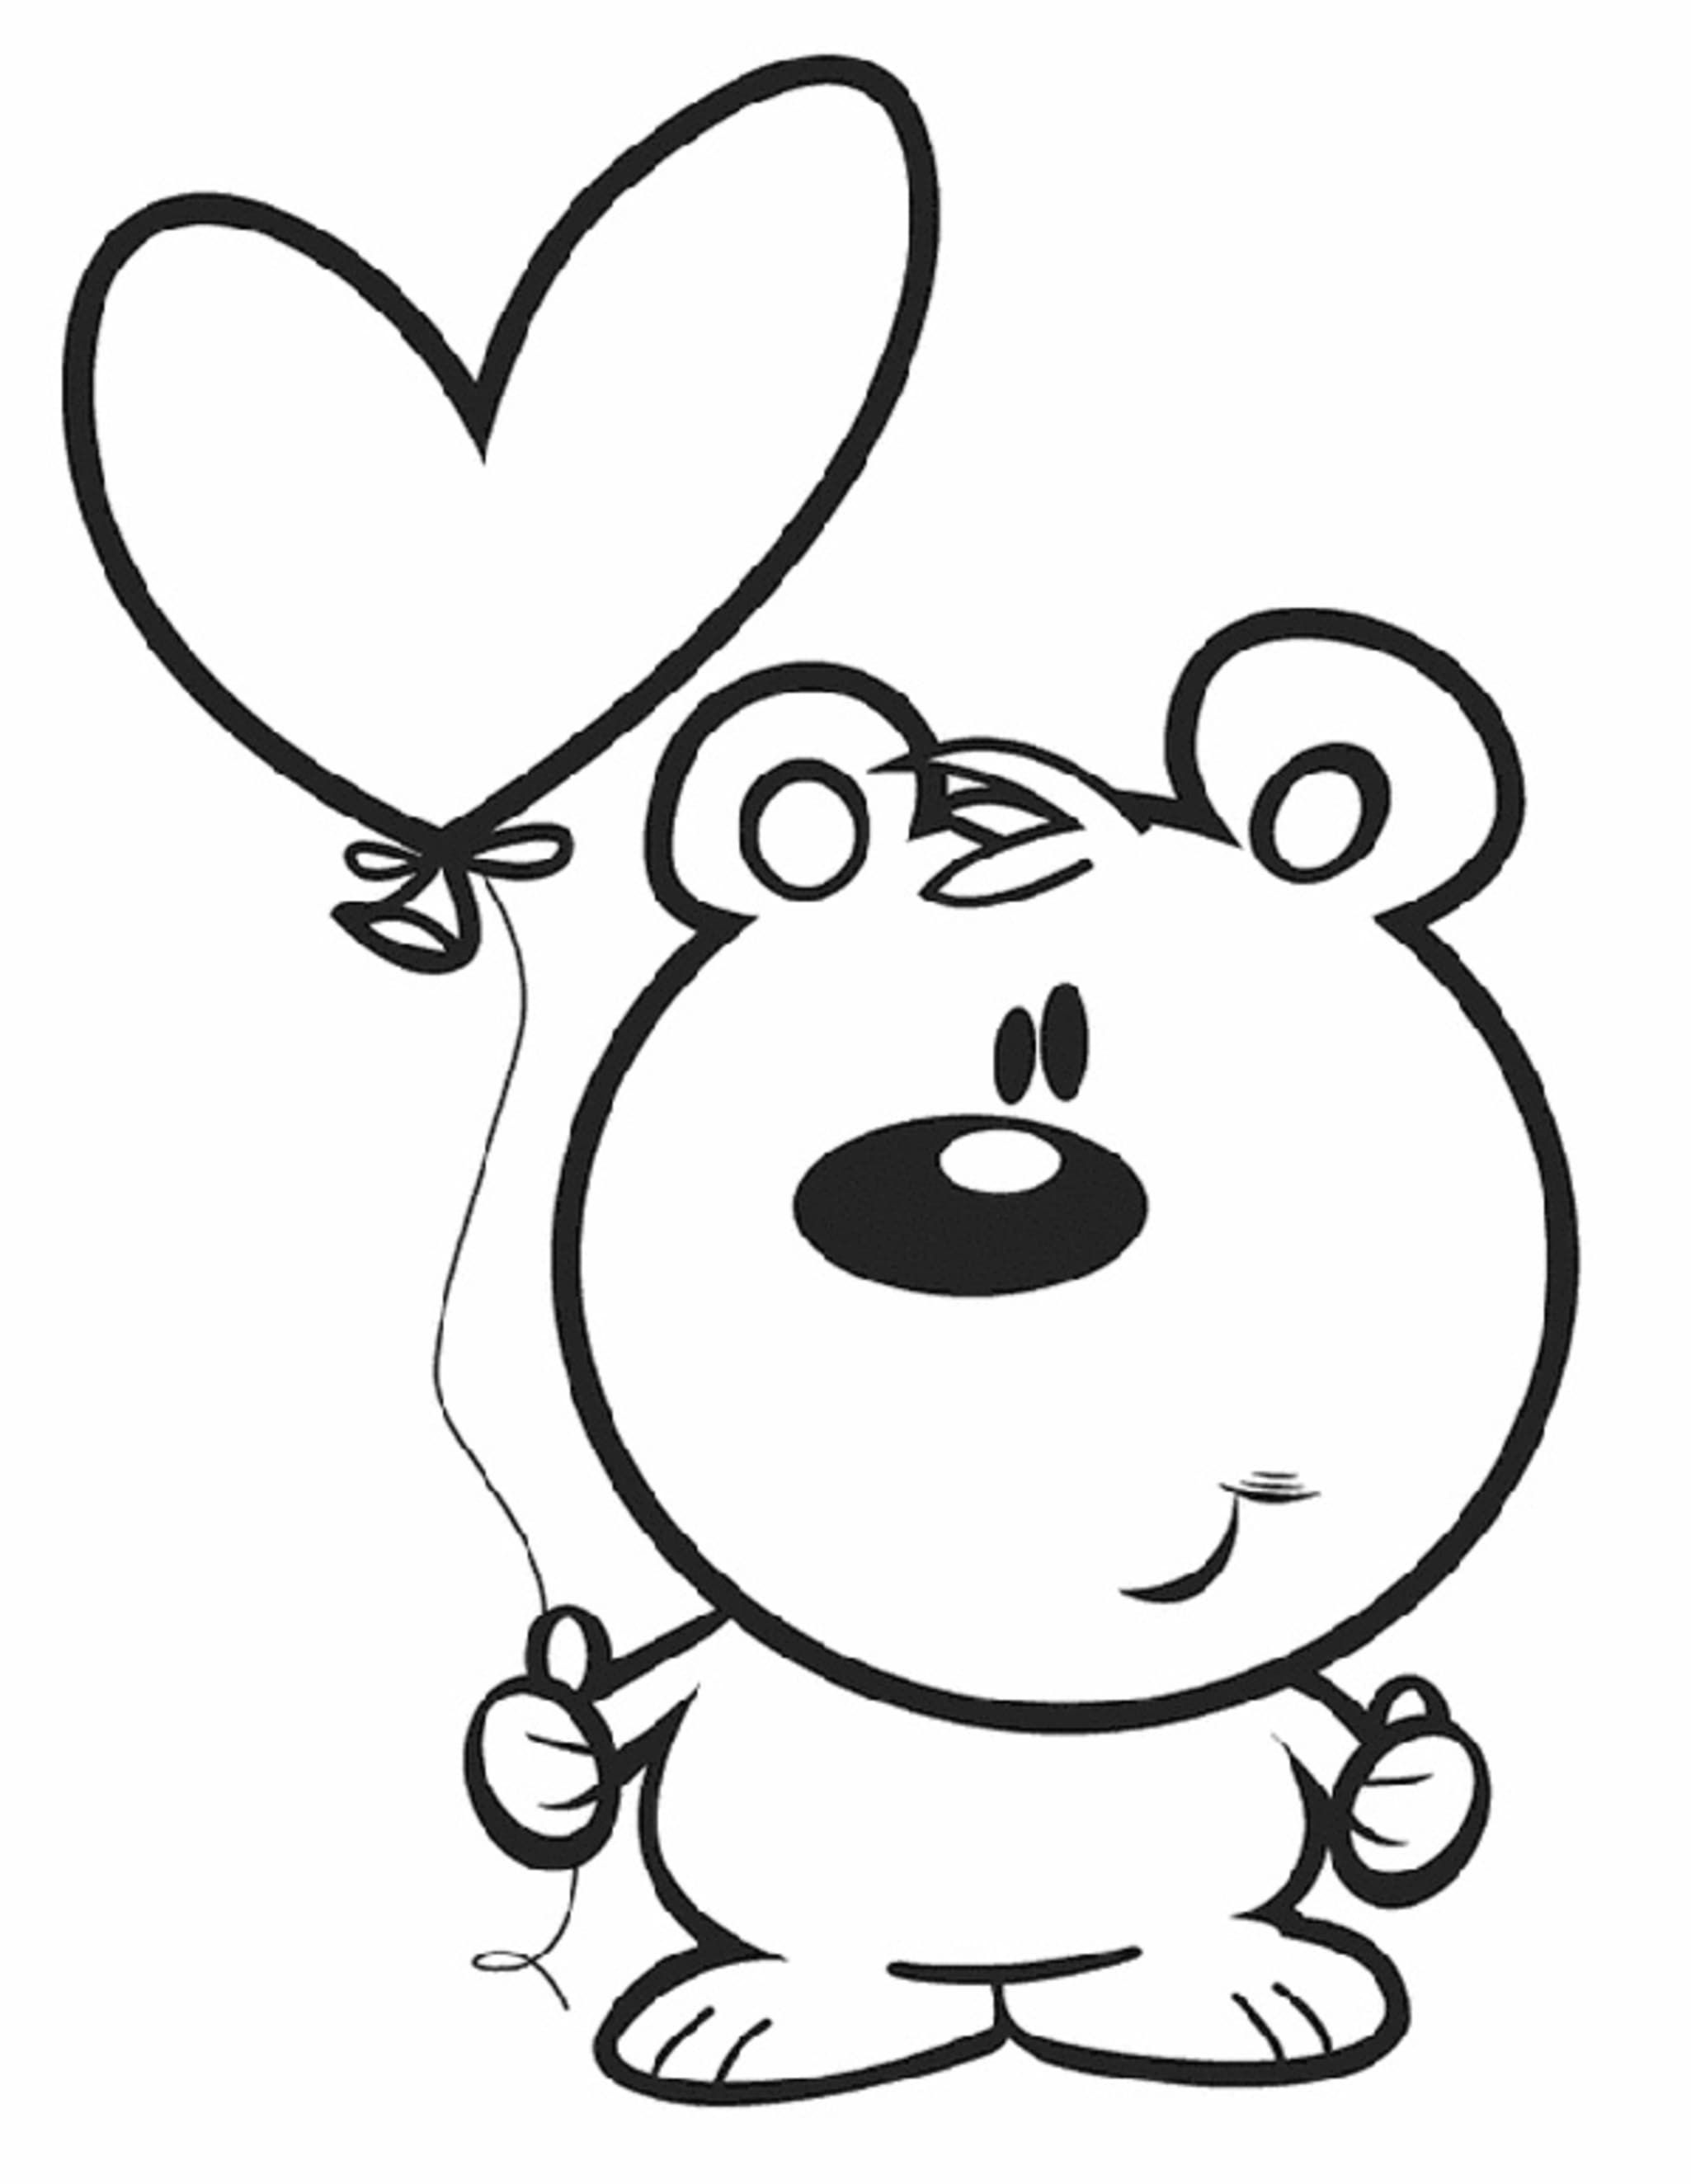 29 Valentine S Day Coloring Pages To Print For Kids Valentines Day Coloring Page Heart Coloring Pages Printable Valentines Coloring Pages